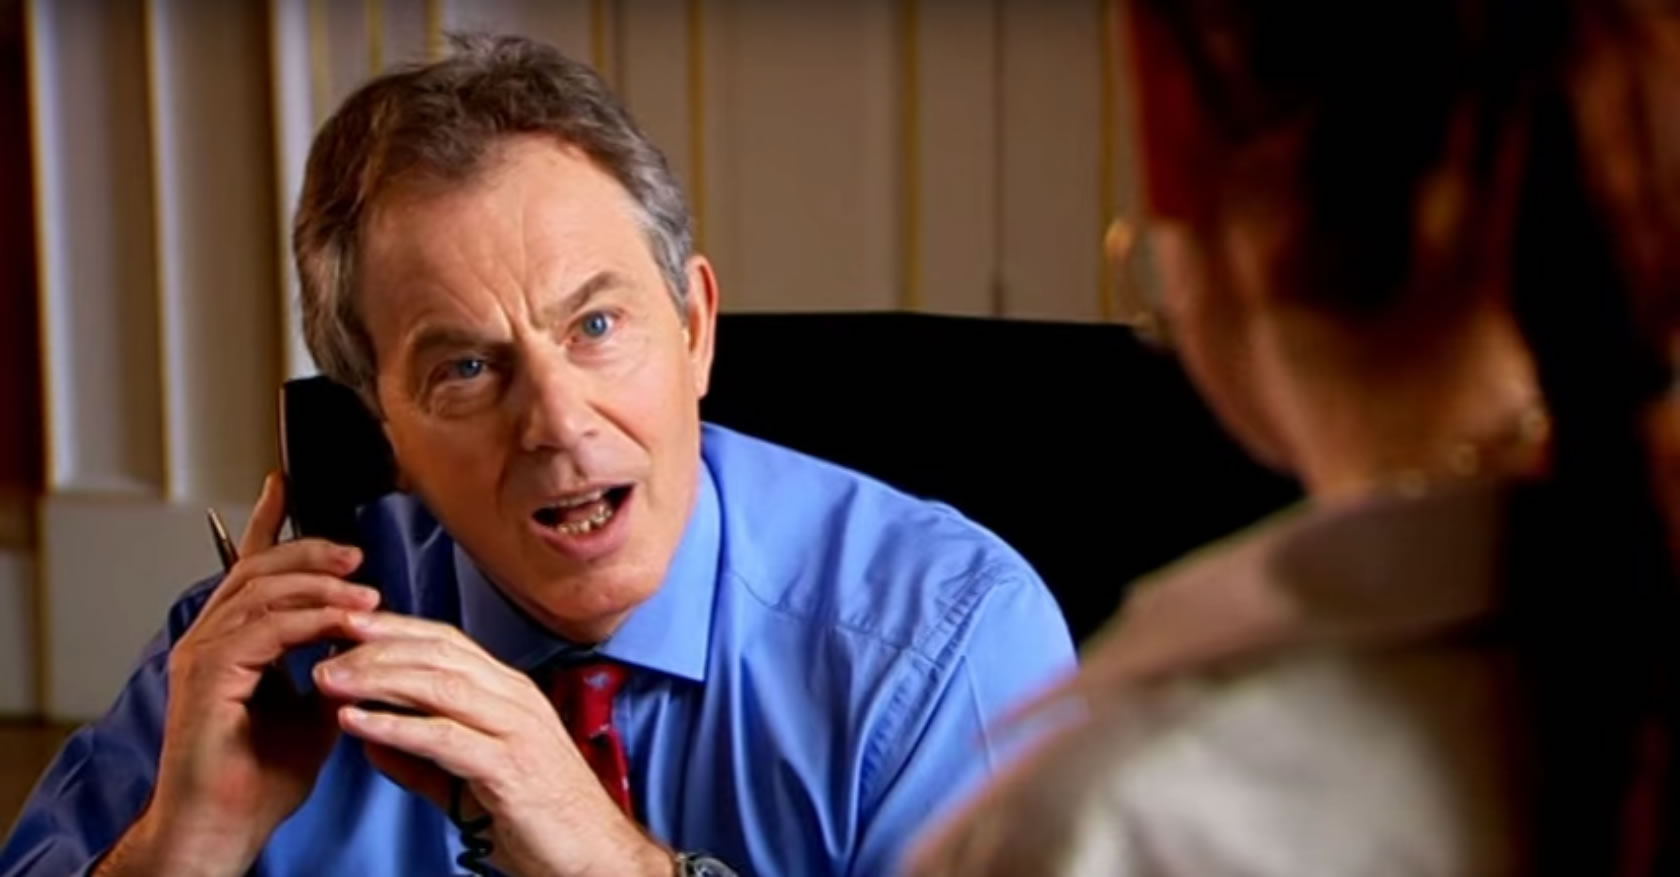 Comic Relief – Lauren Copper meets Tony Blair